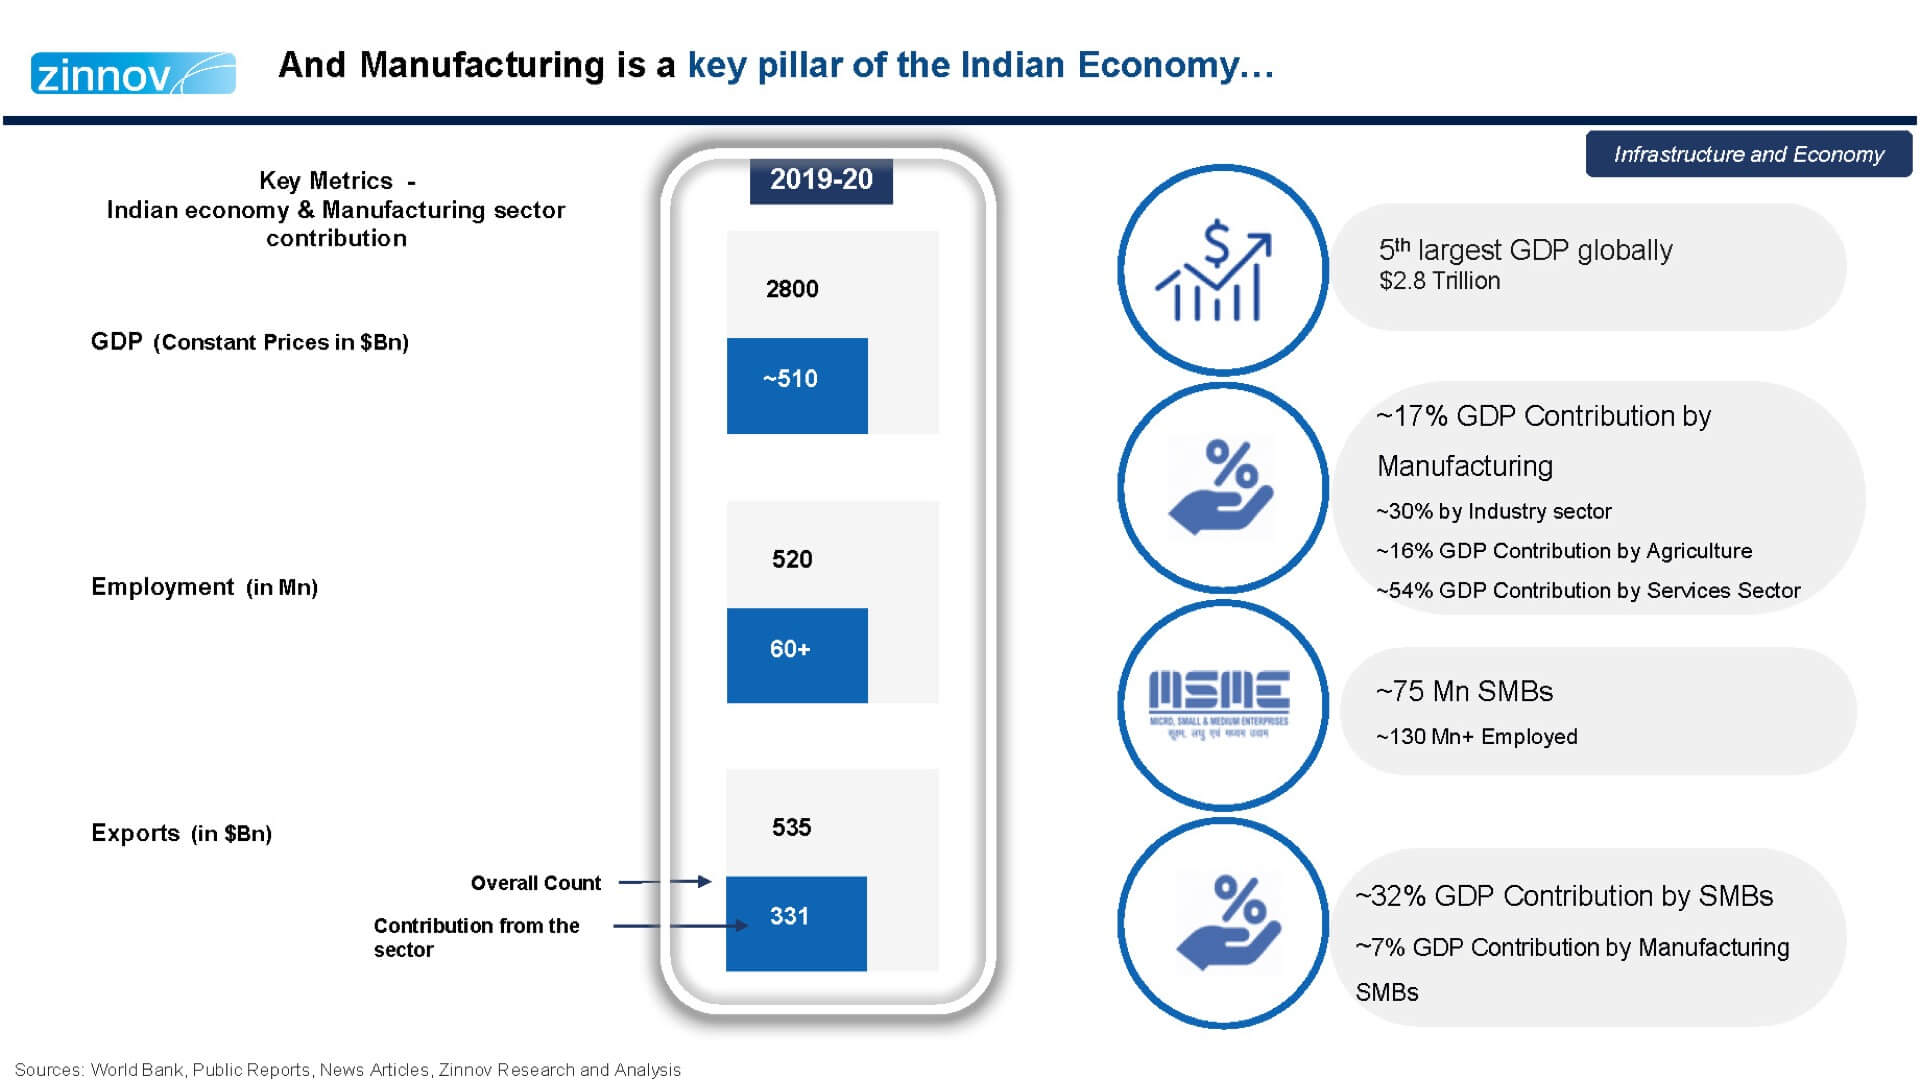 India: A Preferred Manufacturing Destination